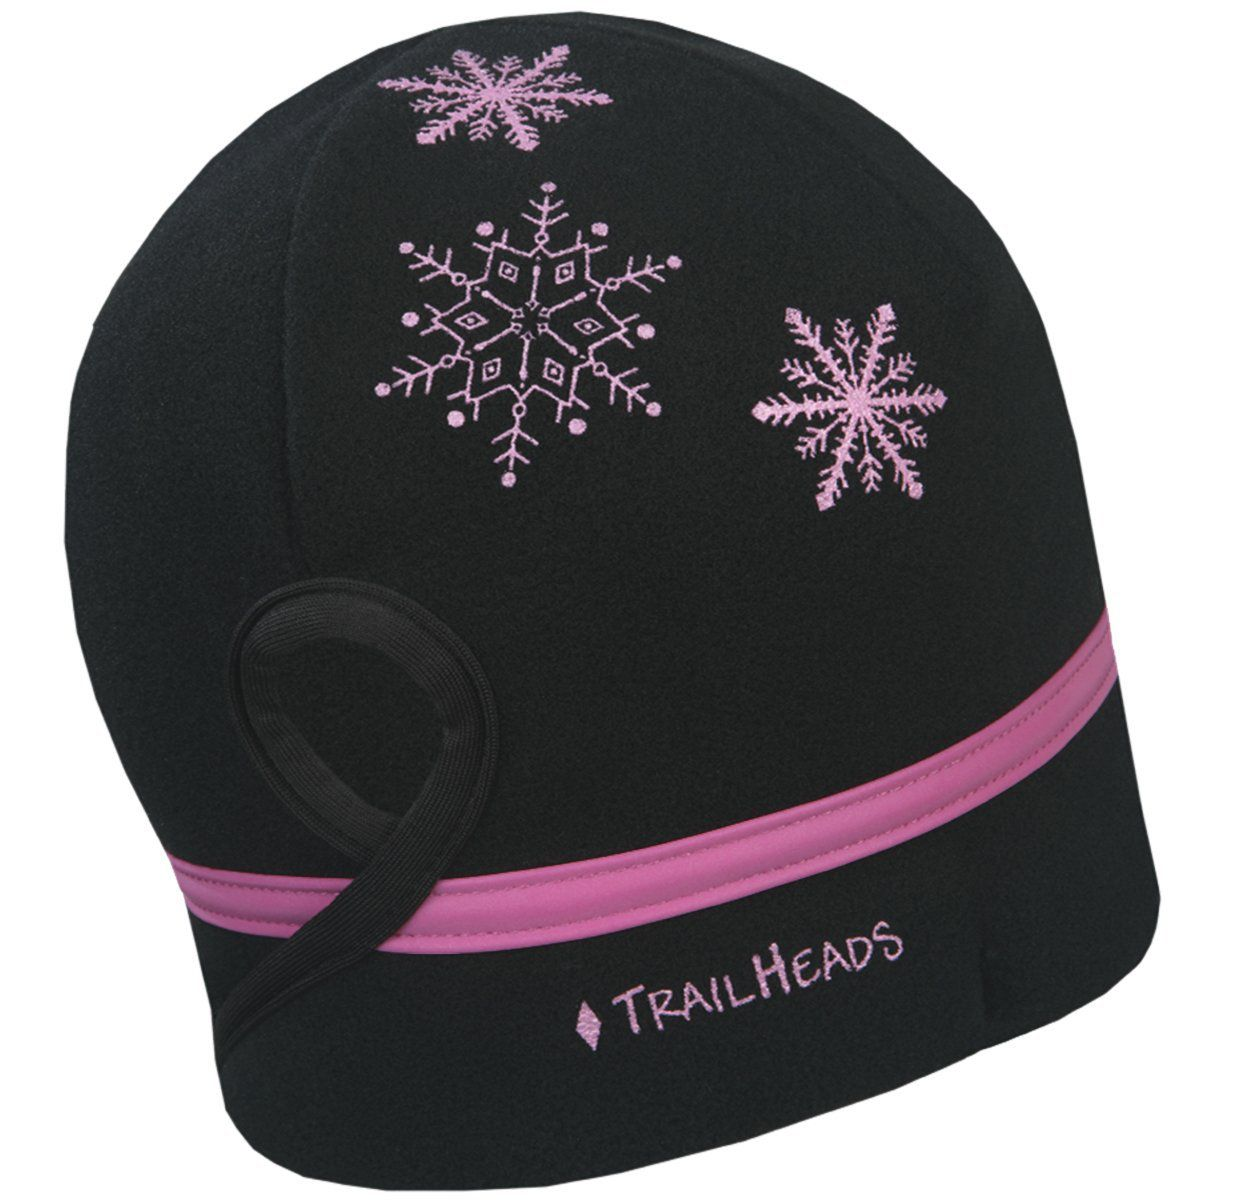 Trail Heads ponytail winter hat 841a763dba74